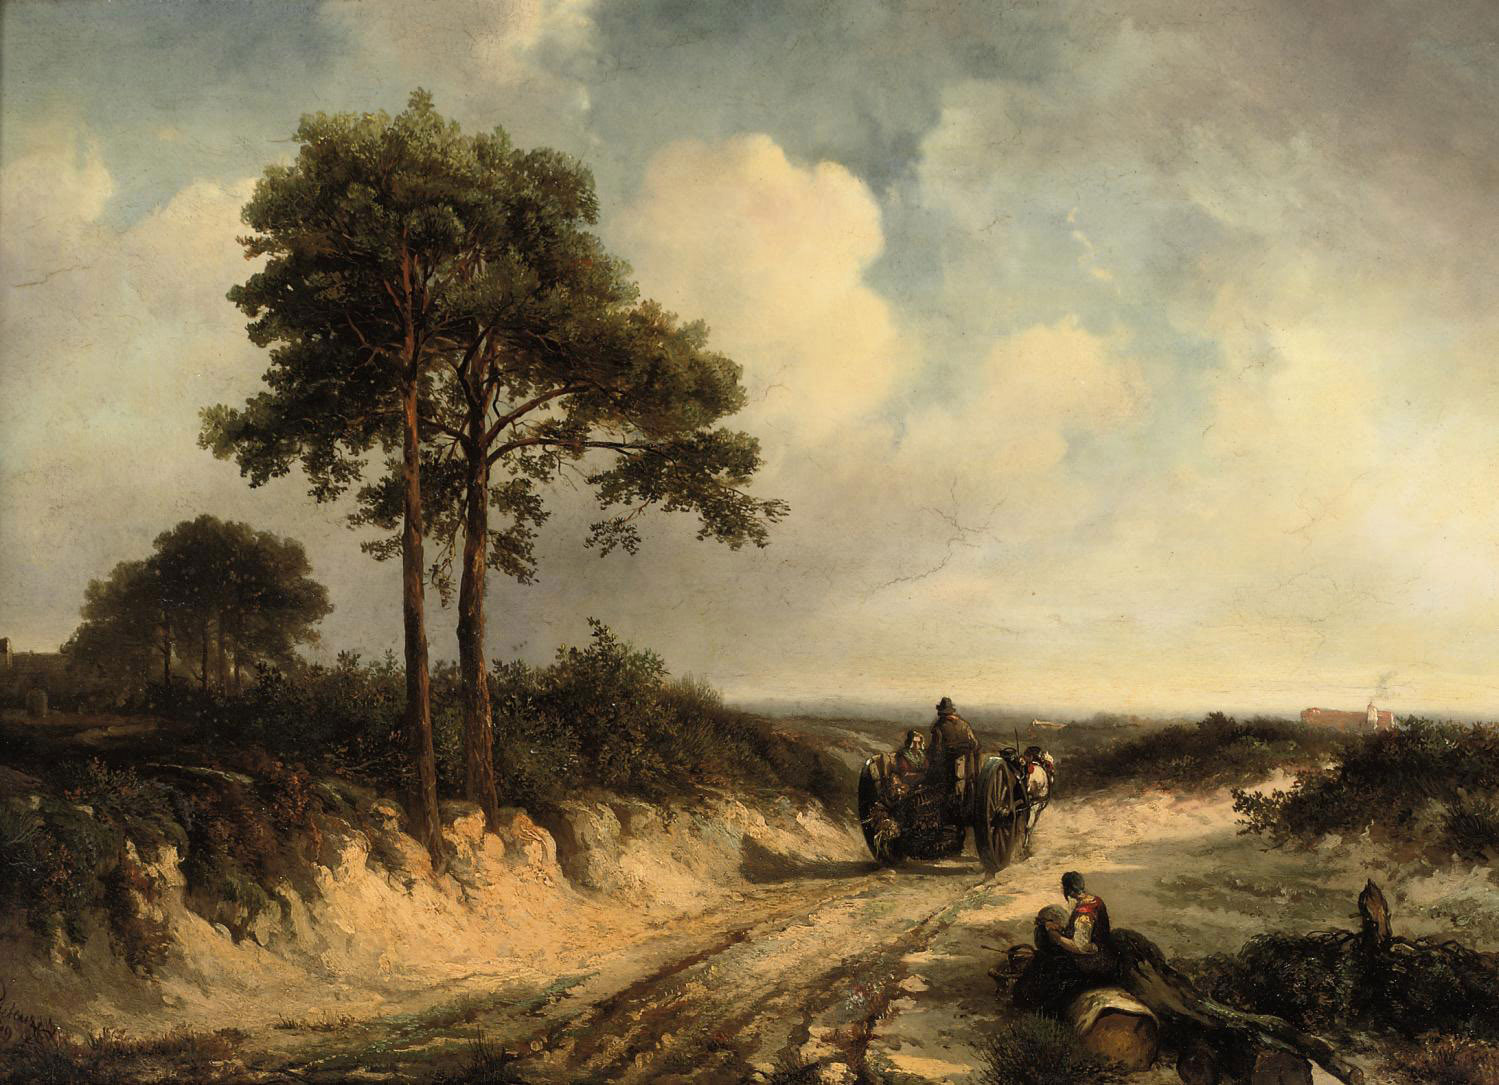 A horse drawn cart along a dusty road